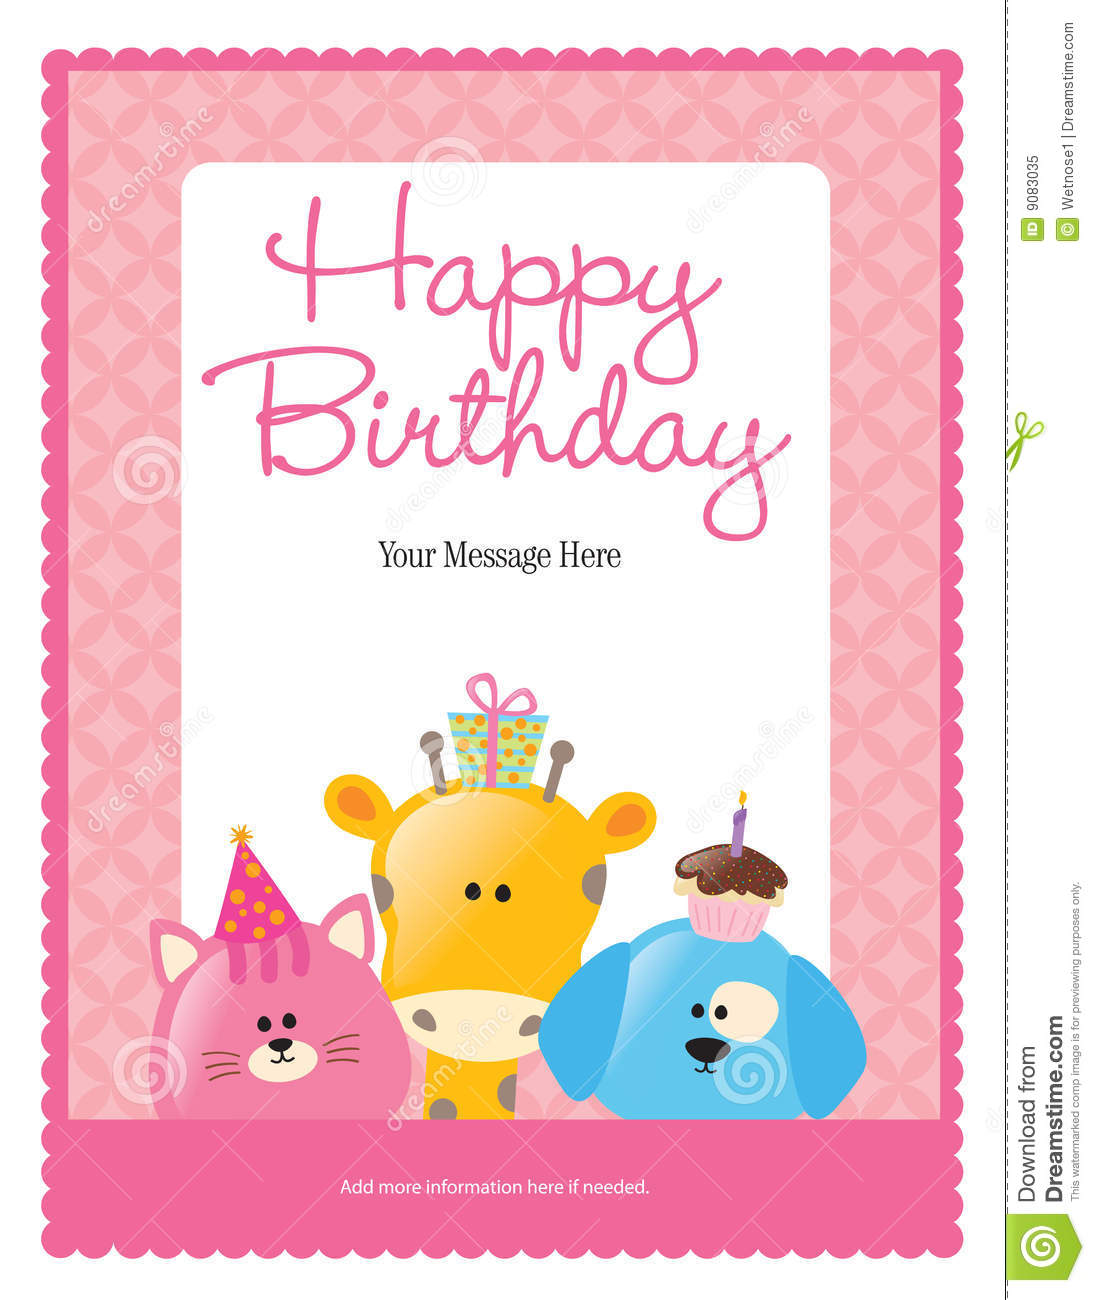 free birthday poster template ; 8-5x11-birthday-flyer-poster-template-9083035